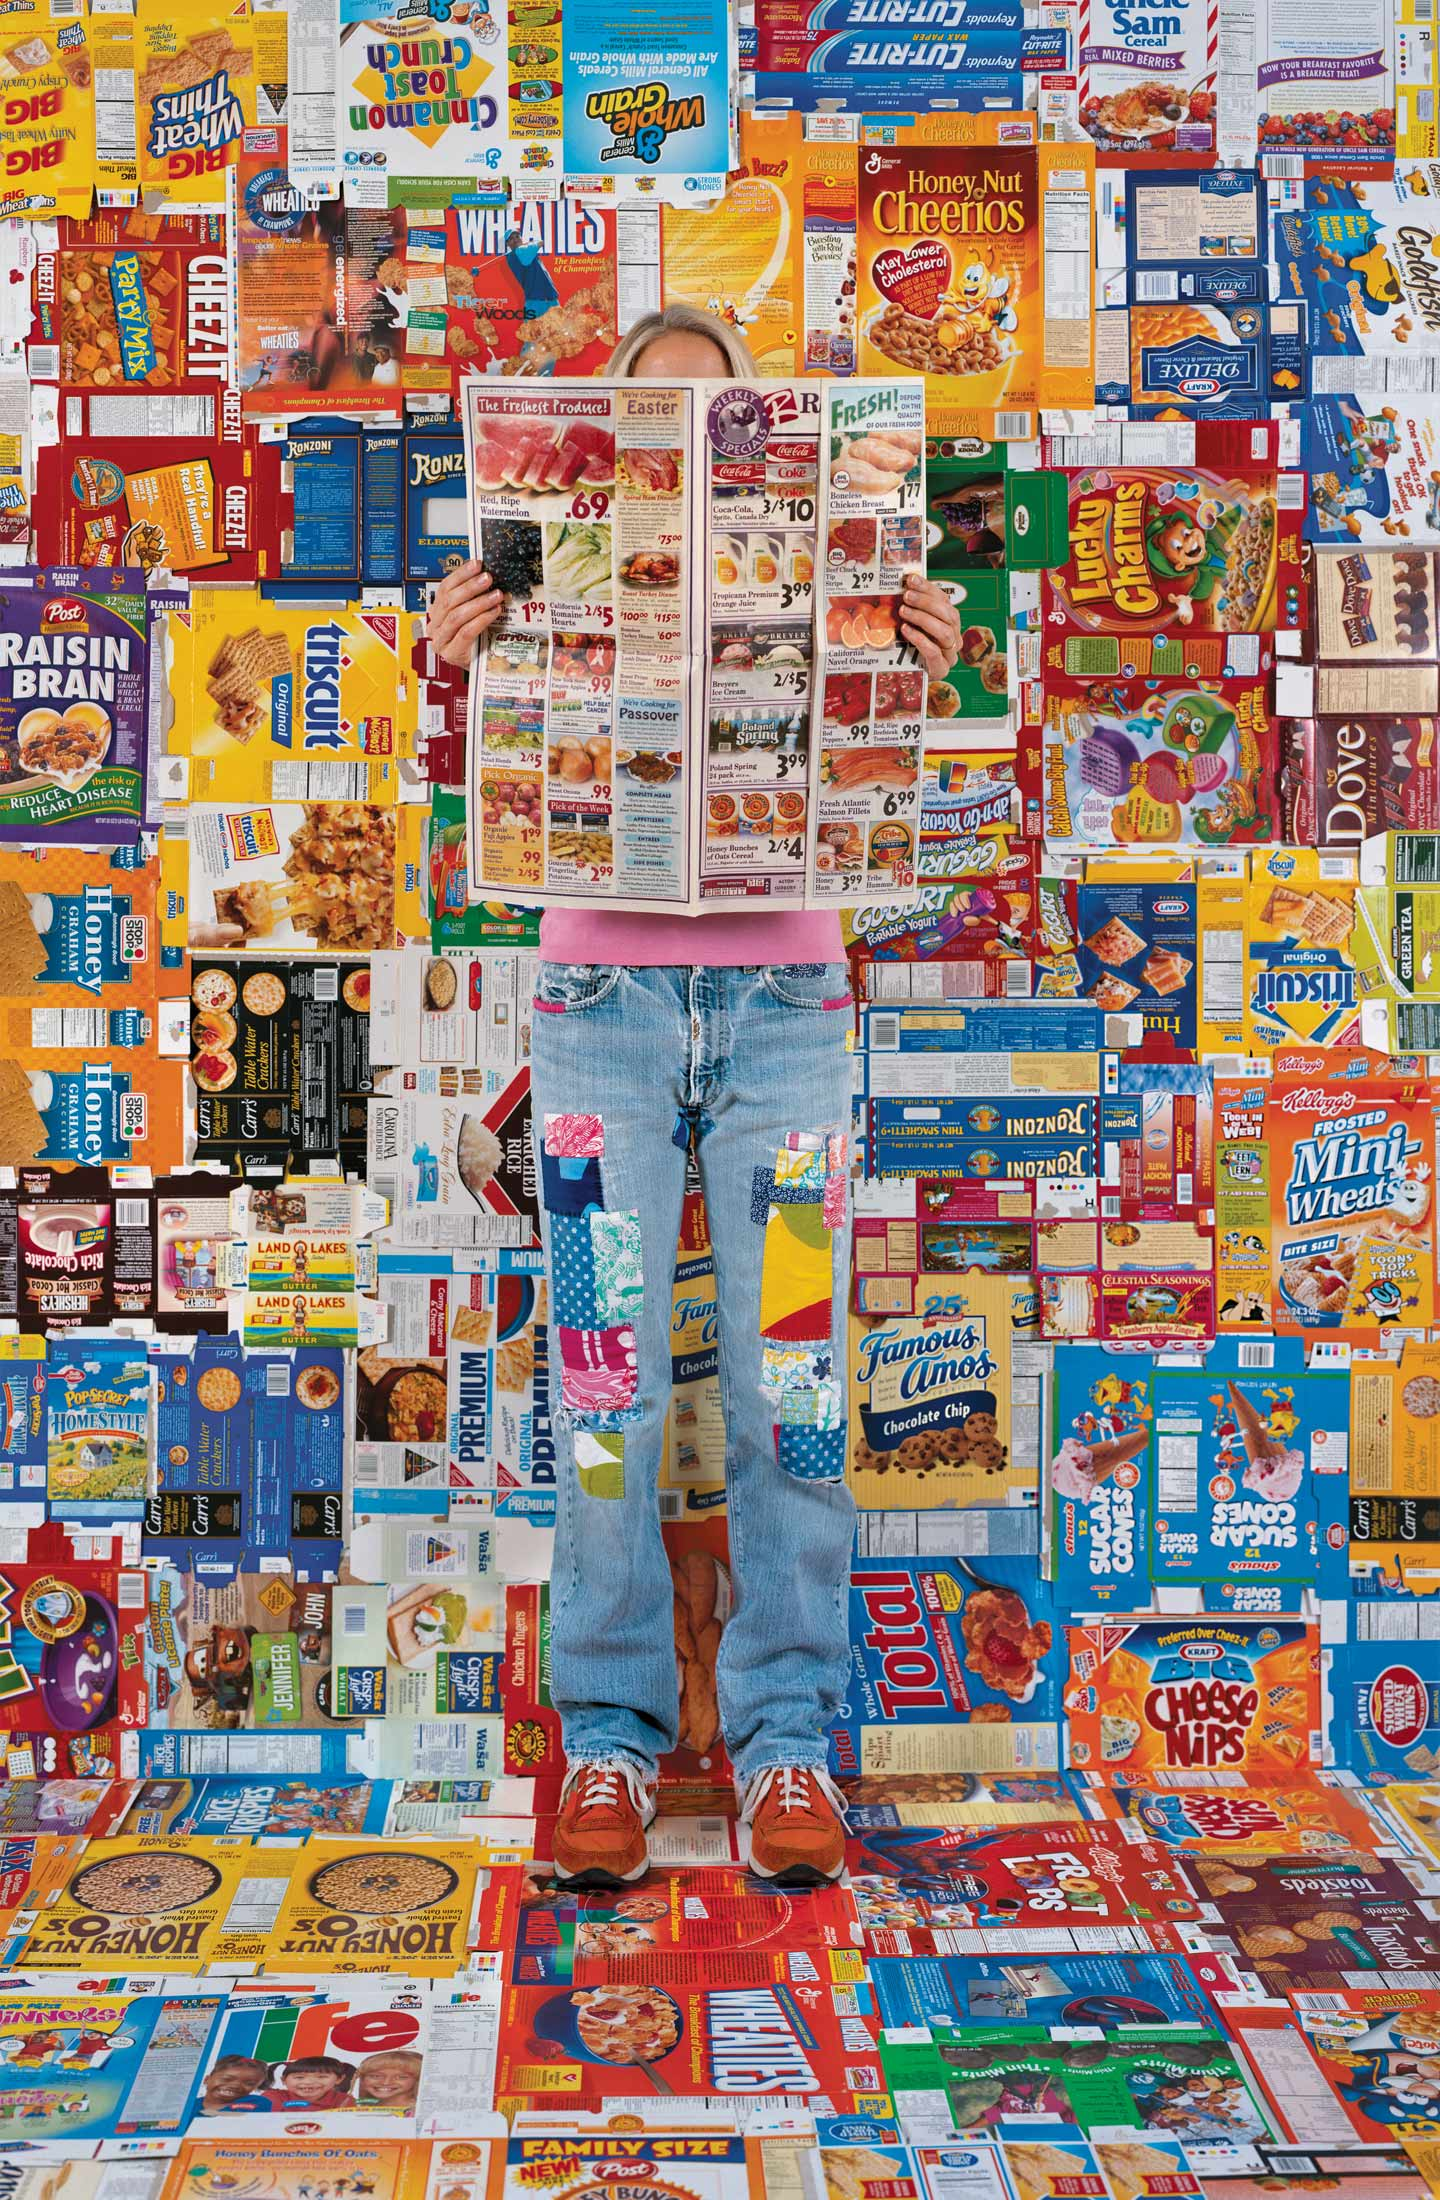 Lost in My Life (Boxes), 2009. Archival pigment print. © Rachel Perry. Courtesy of the artist and Yancey Richardson Gallery.